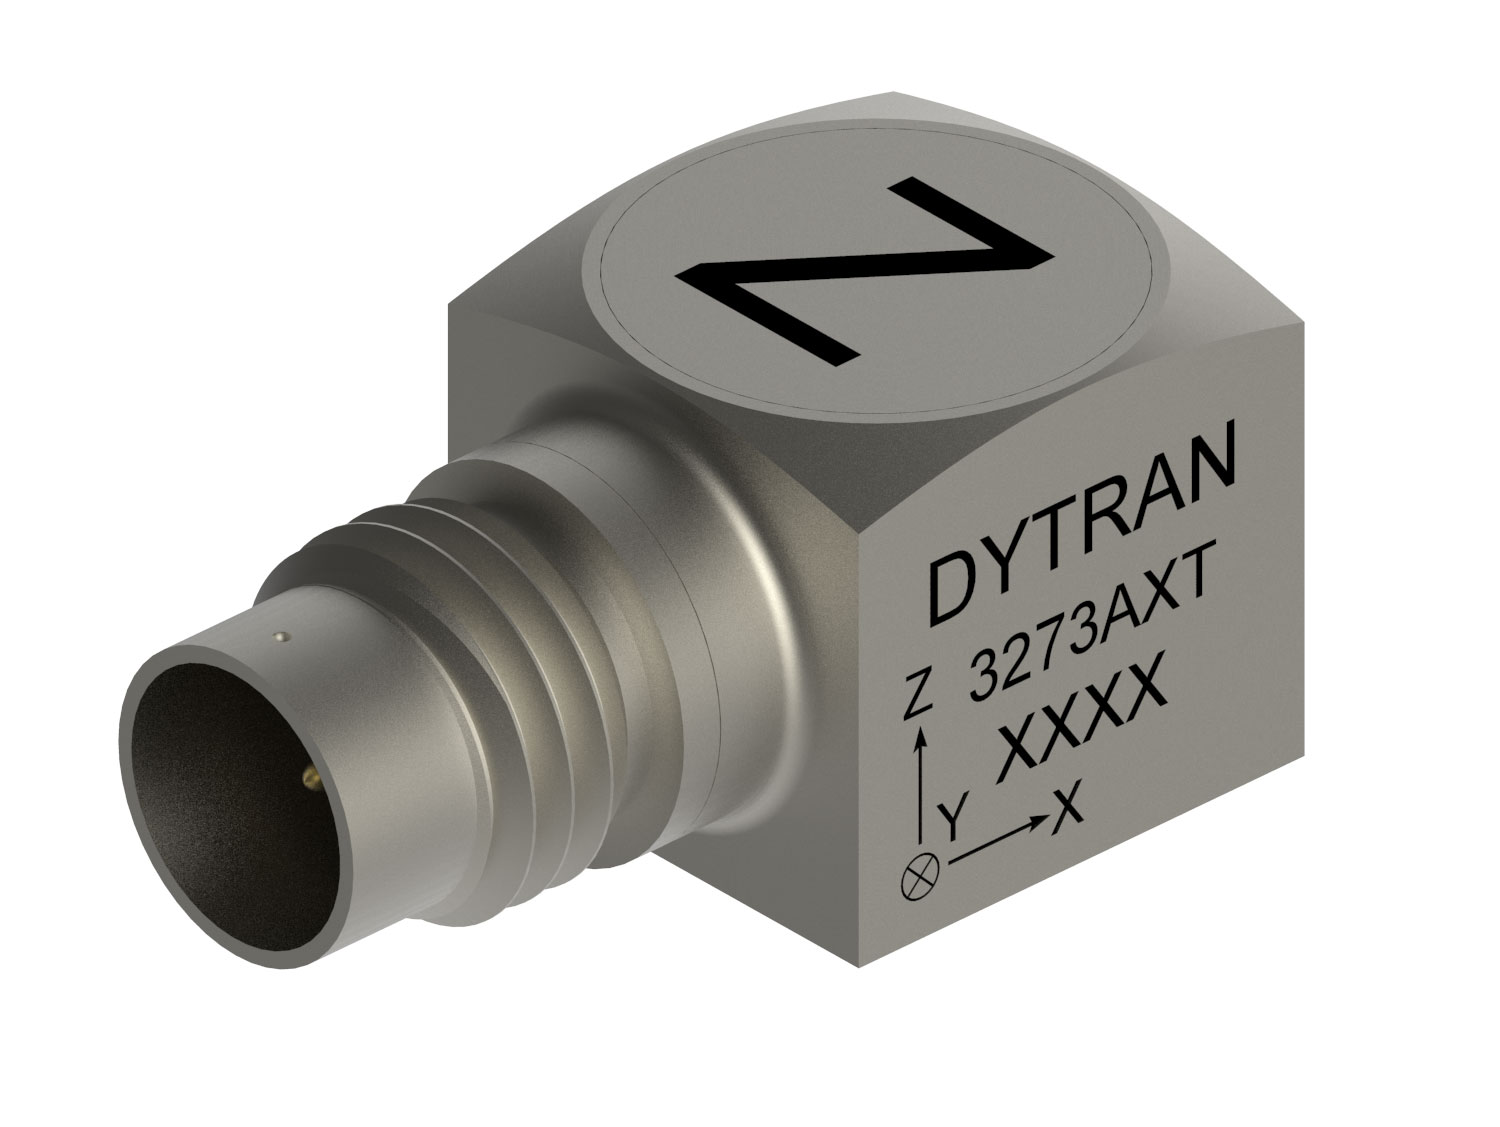 Triaxial Accelerometer includes IEEE 1451.4 TEDS.